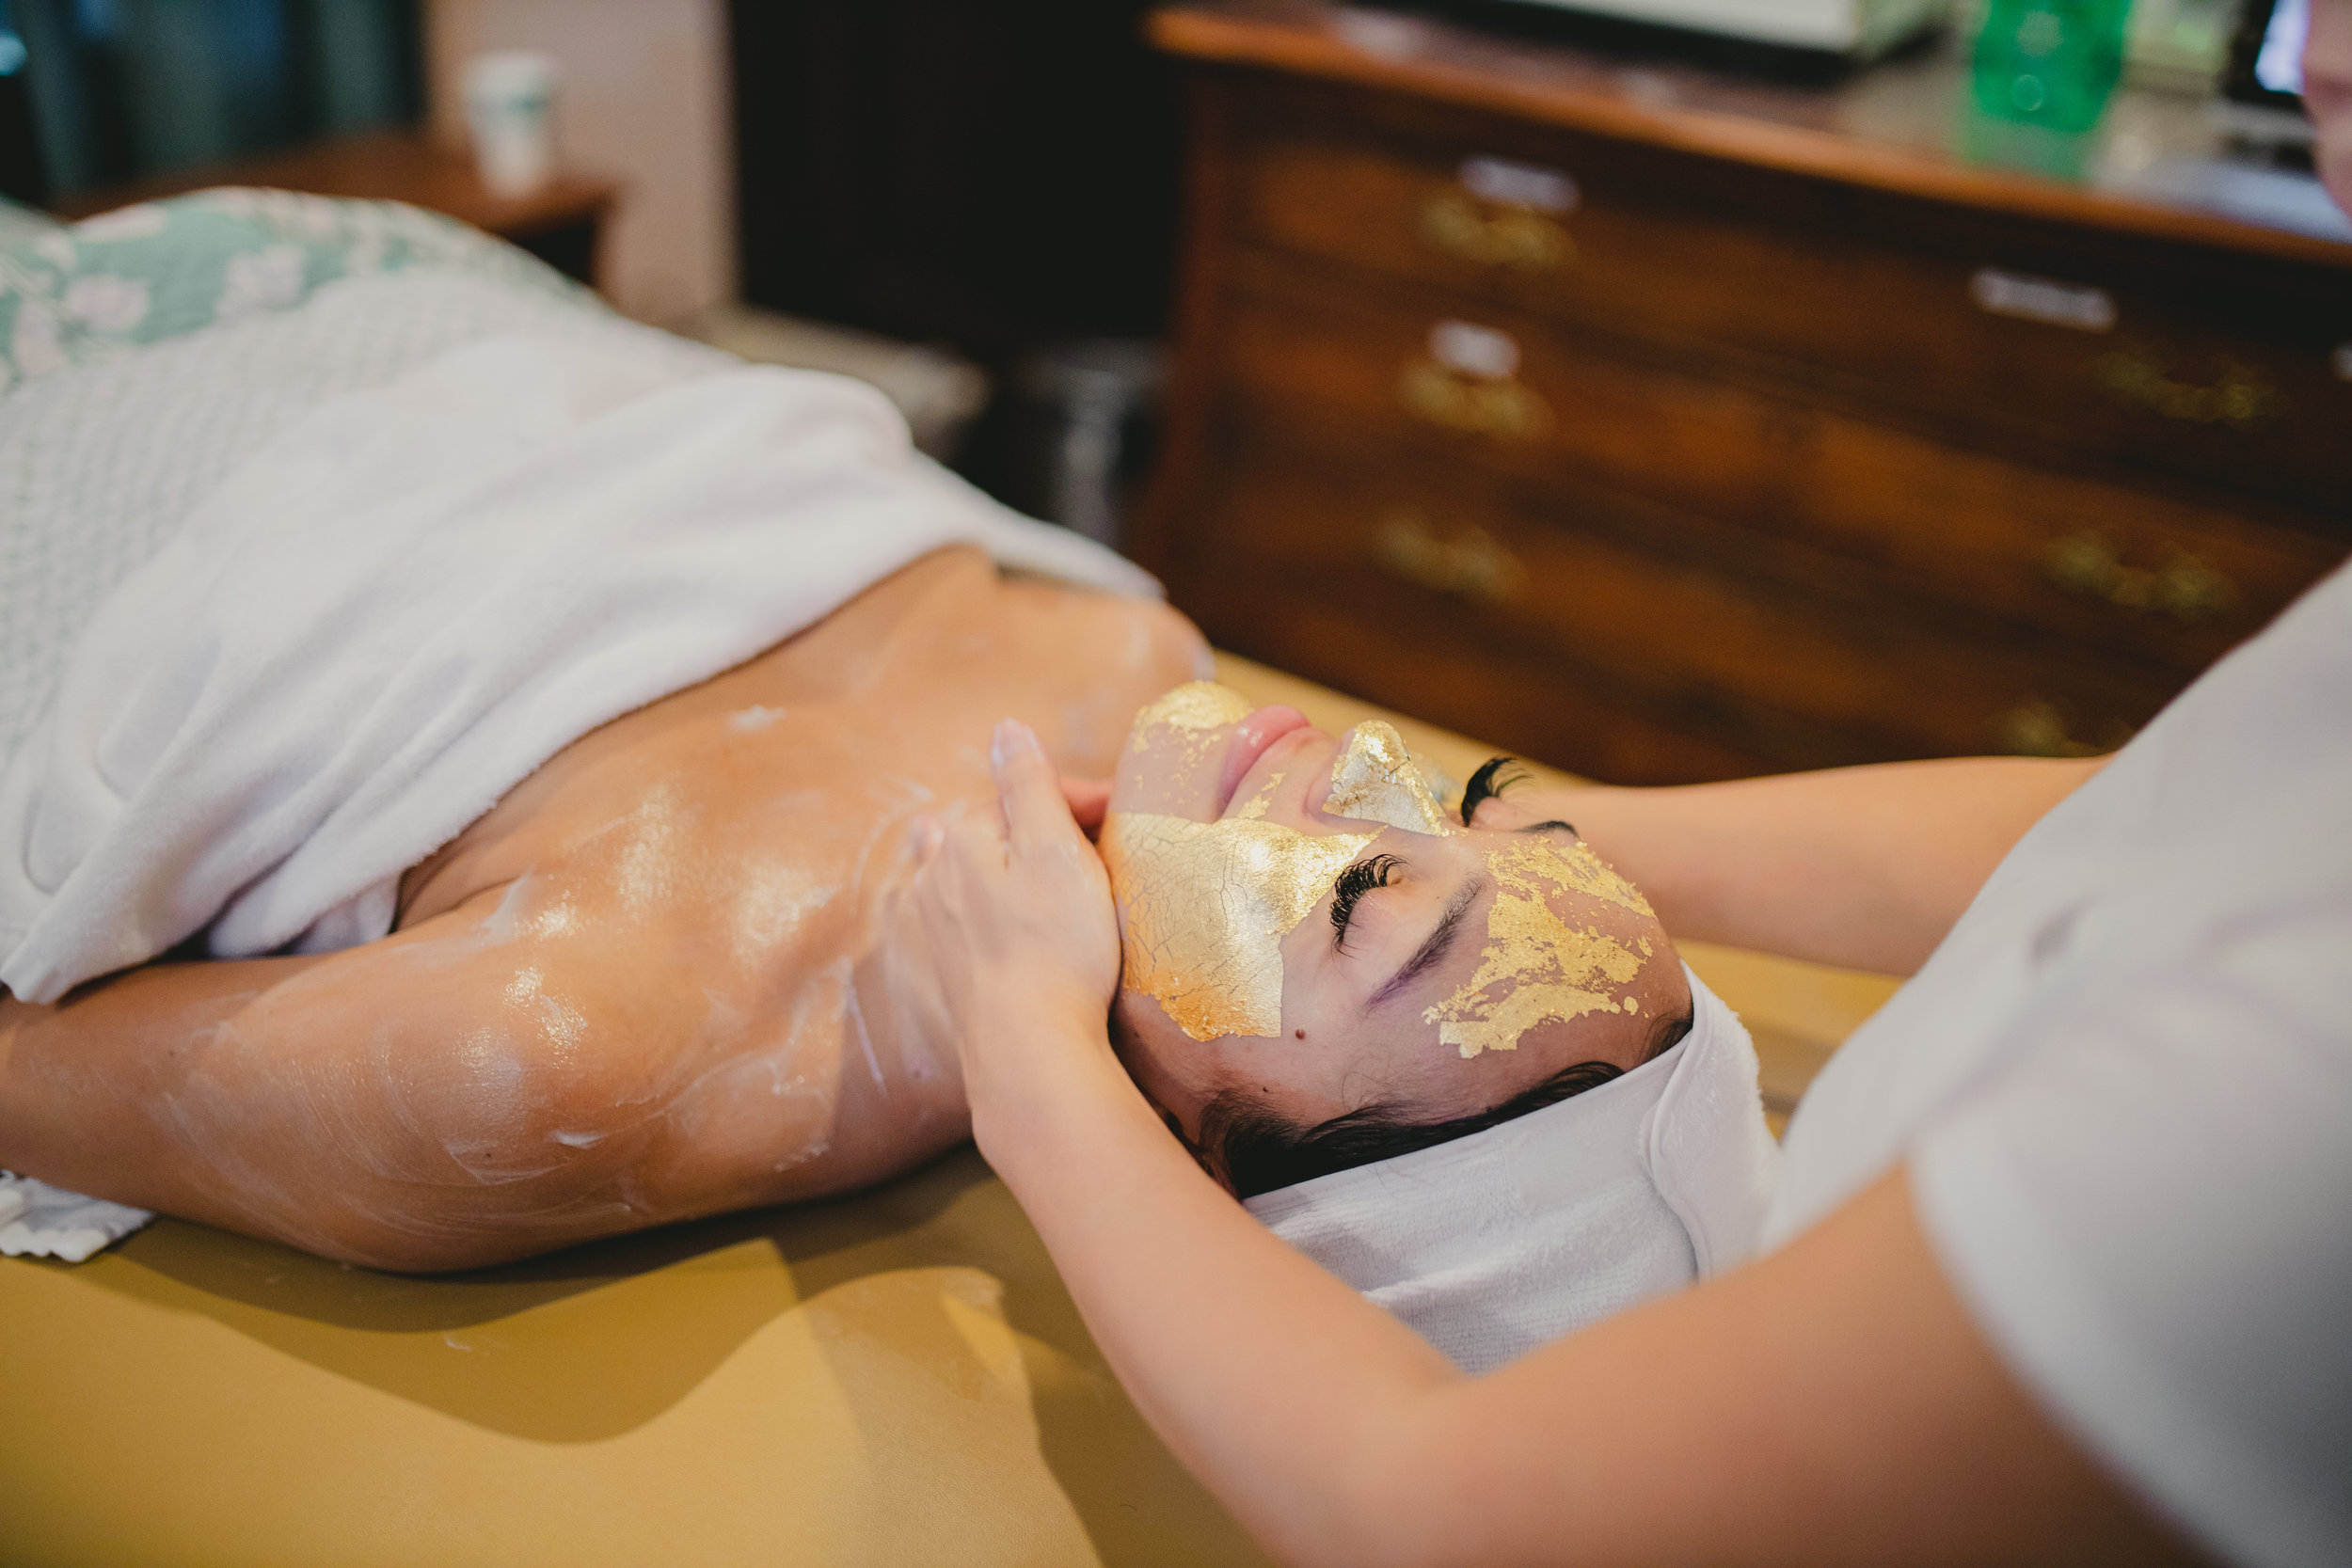 Luxury Facials - GOLD THERAPY uses a mask of pure 24k Gold. For wrinkles, dull skin and pigmentation, Gold mask activates skin cells, rejuvenates and tightens the skin.